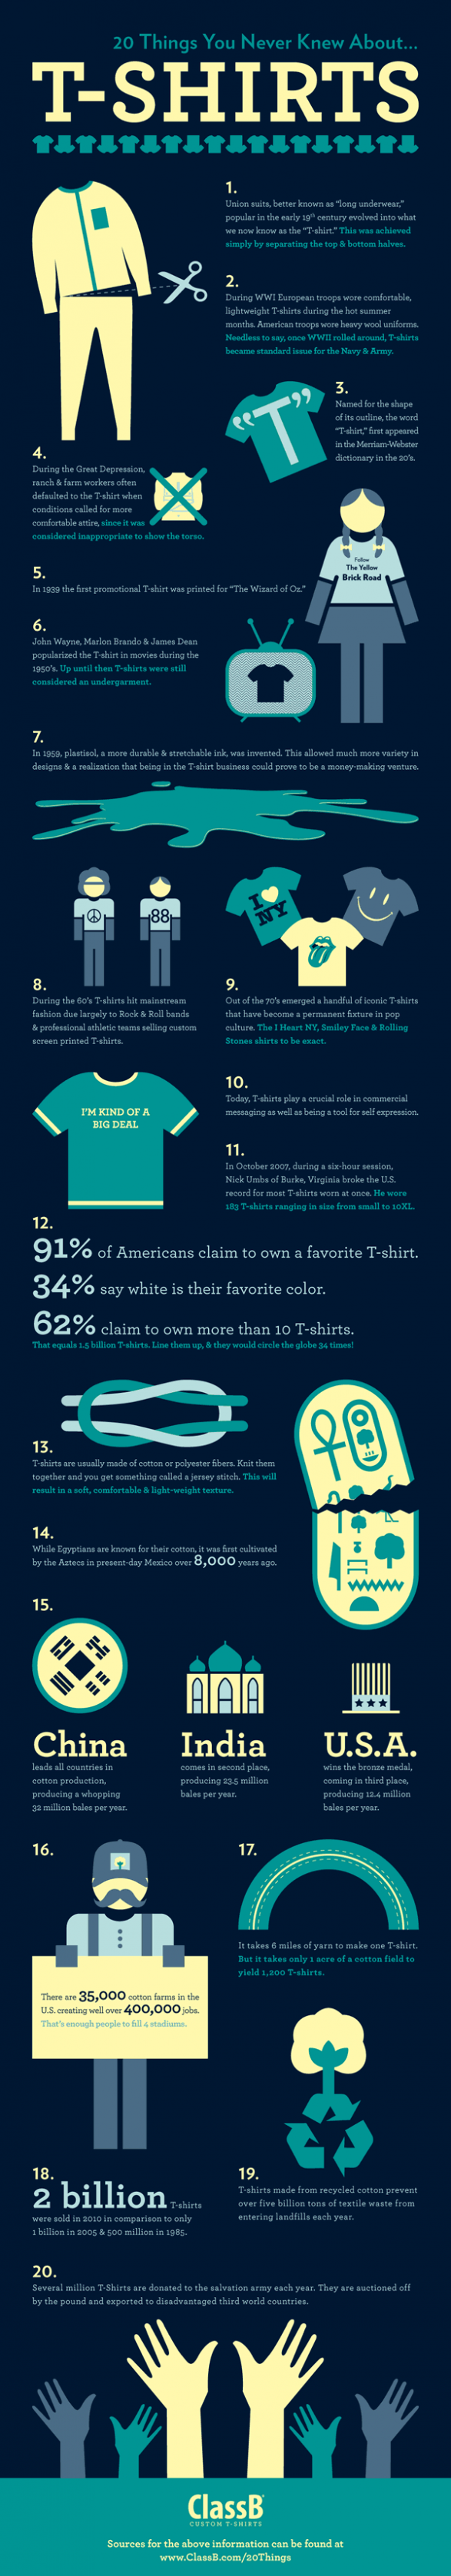 20 facts about t-shirts you might like to know - Infographic